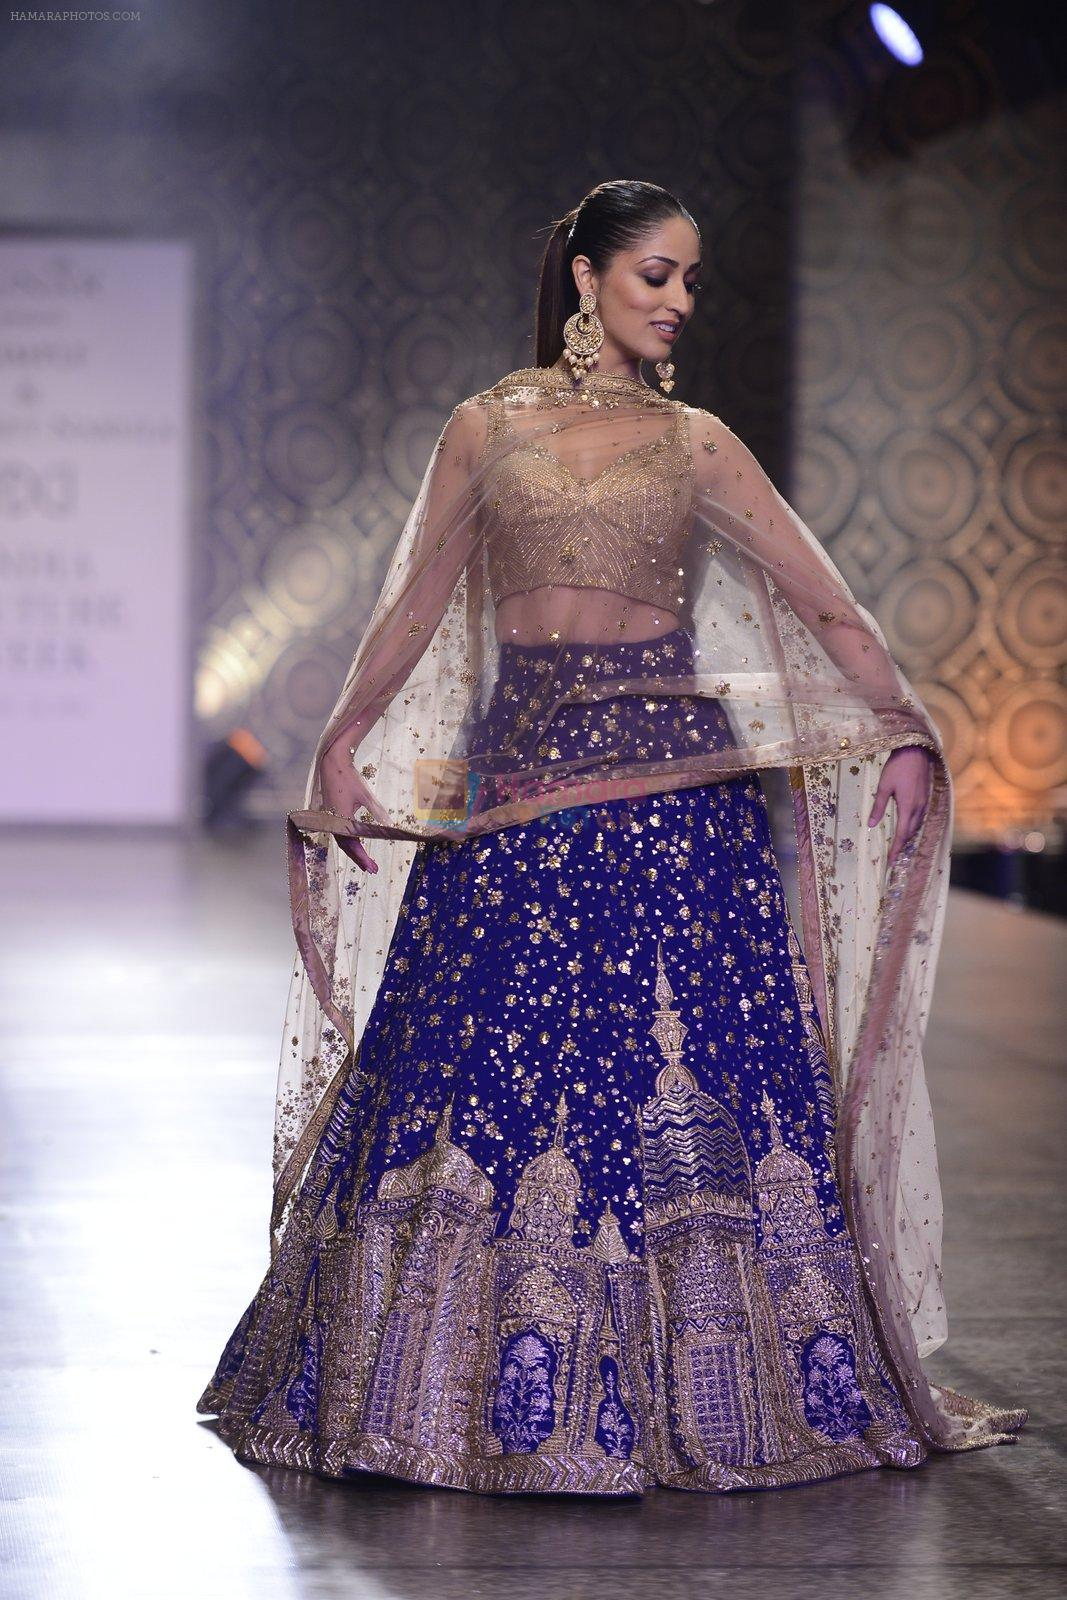 Yami Gautam walks the ramp for Rimple and Harpreet Narula at the FDCI India Couture Week 2016 on 22 July 2016